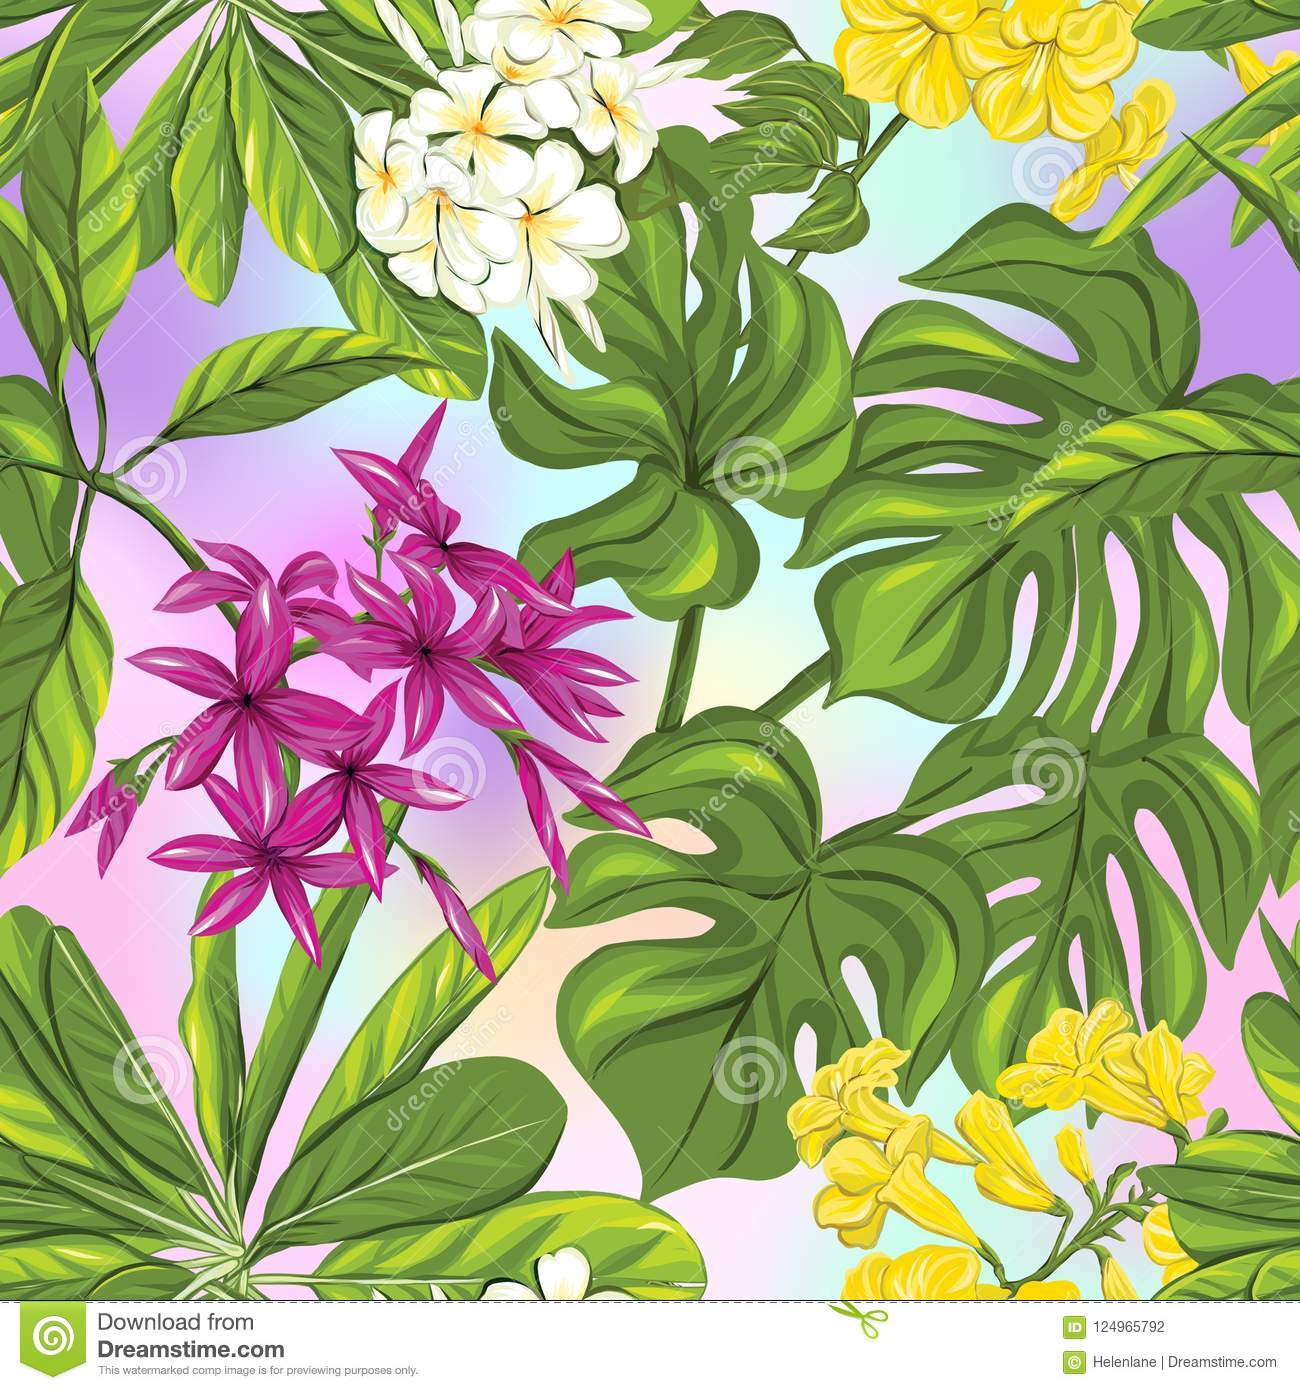 Seamless pattern, background with tropical plants: monstera, strelitzia, bougainvillea,